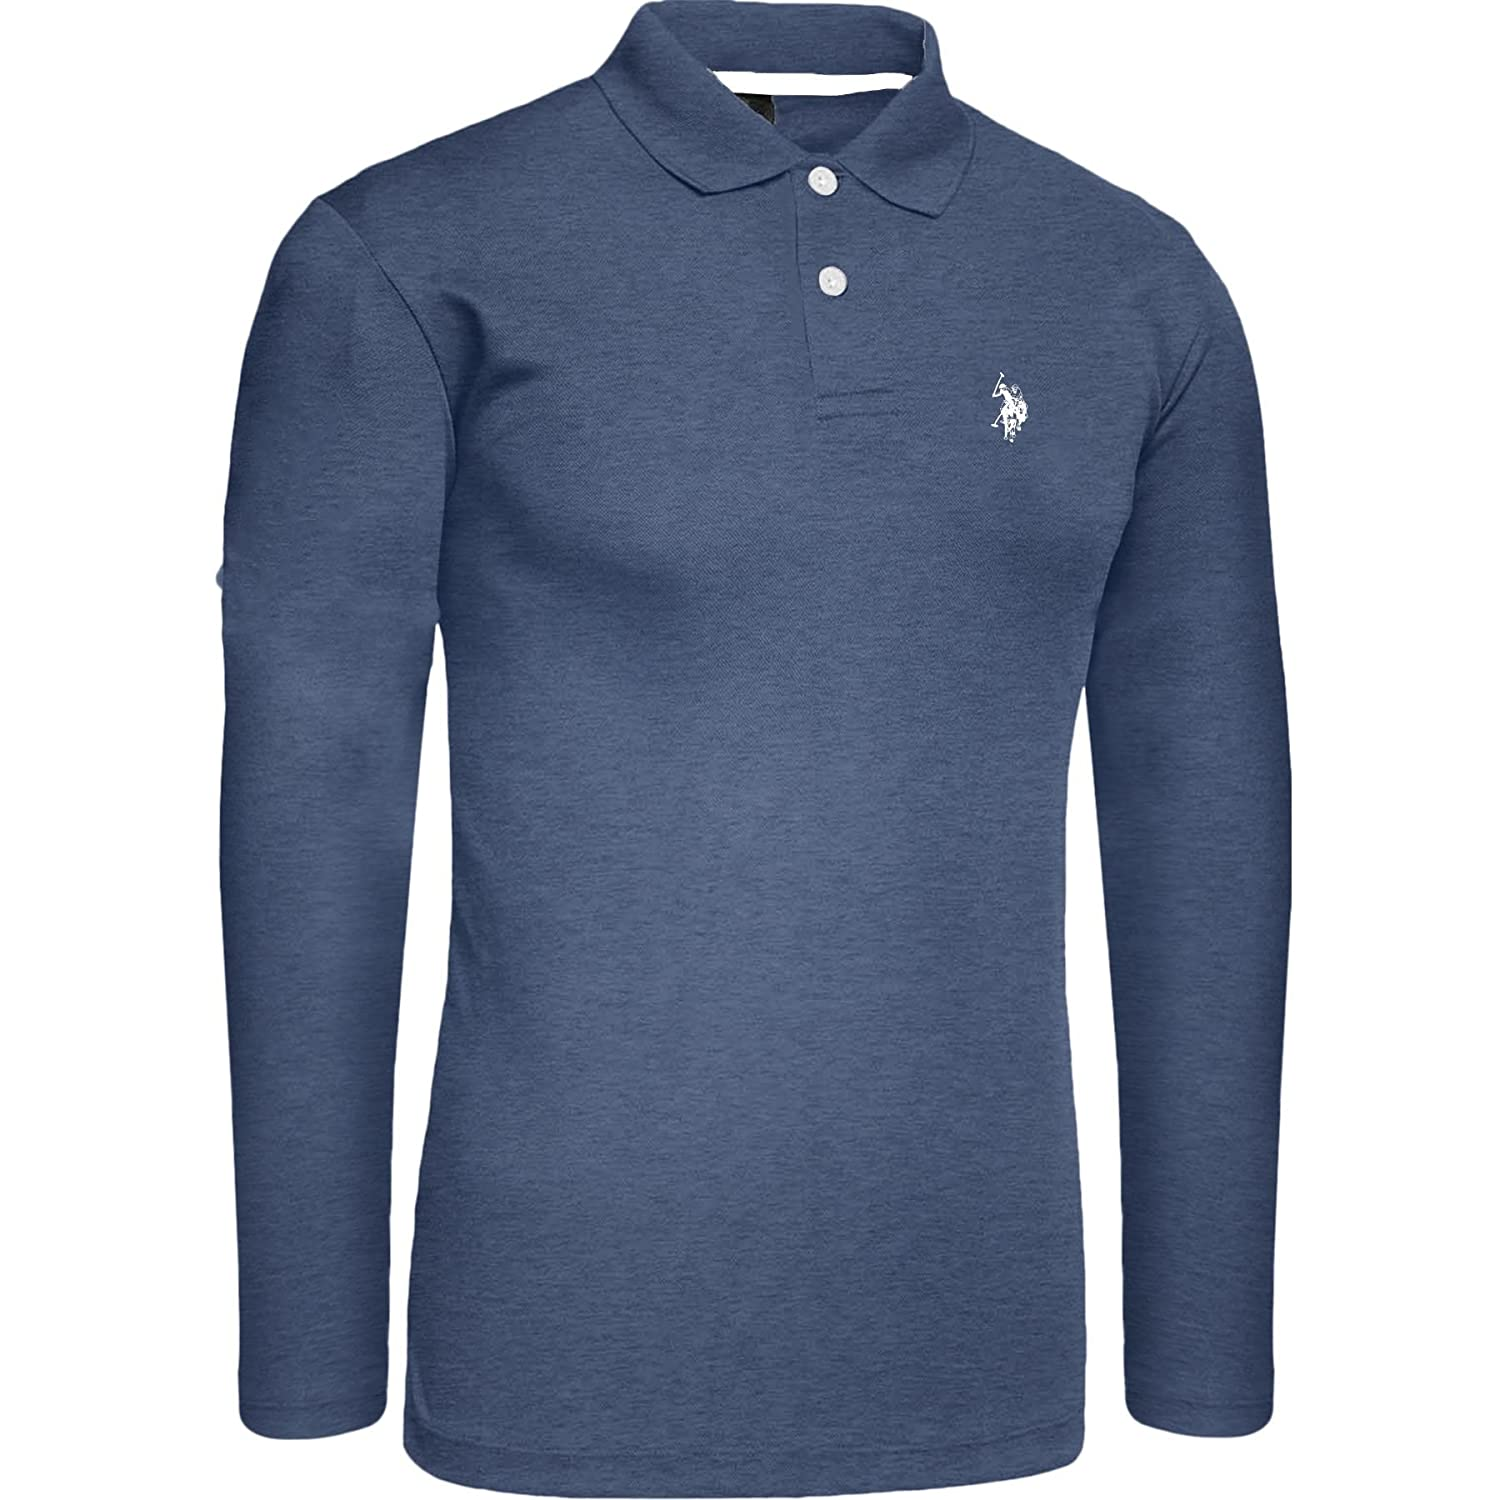 New Mens US Polo ASSN Long Sleeve Pique Polo Horse Shirt | Small Pony Denim Blue Size S-XXL Custom Fit Top